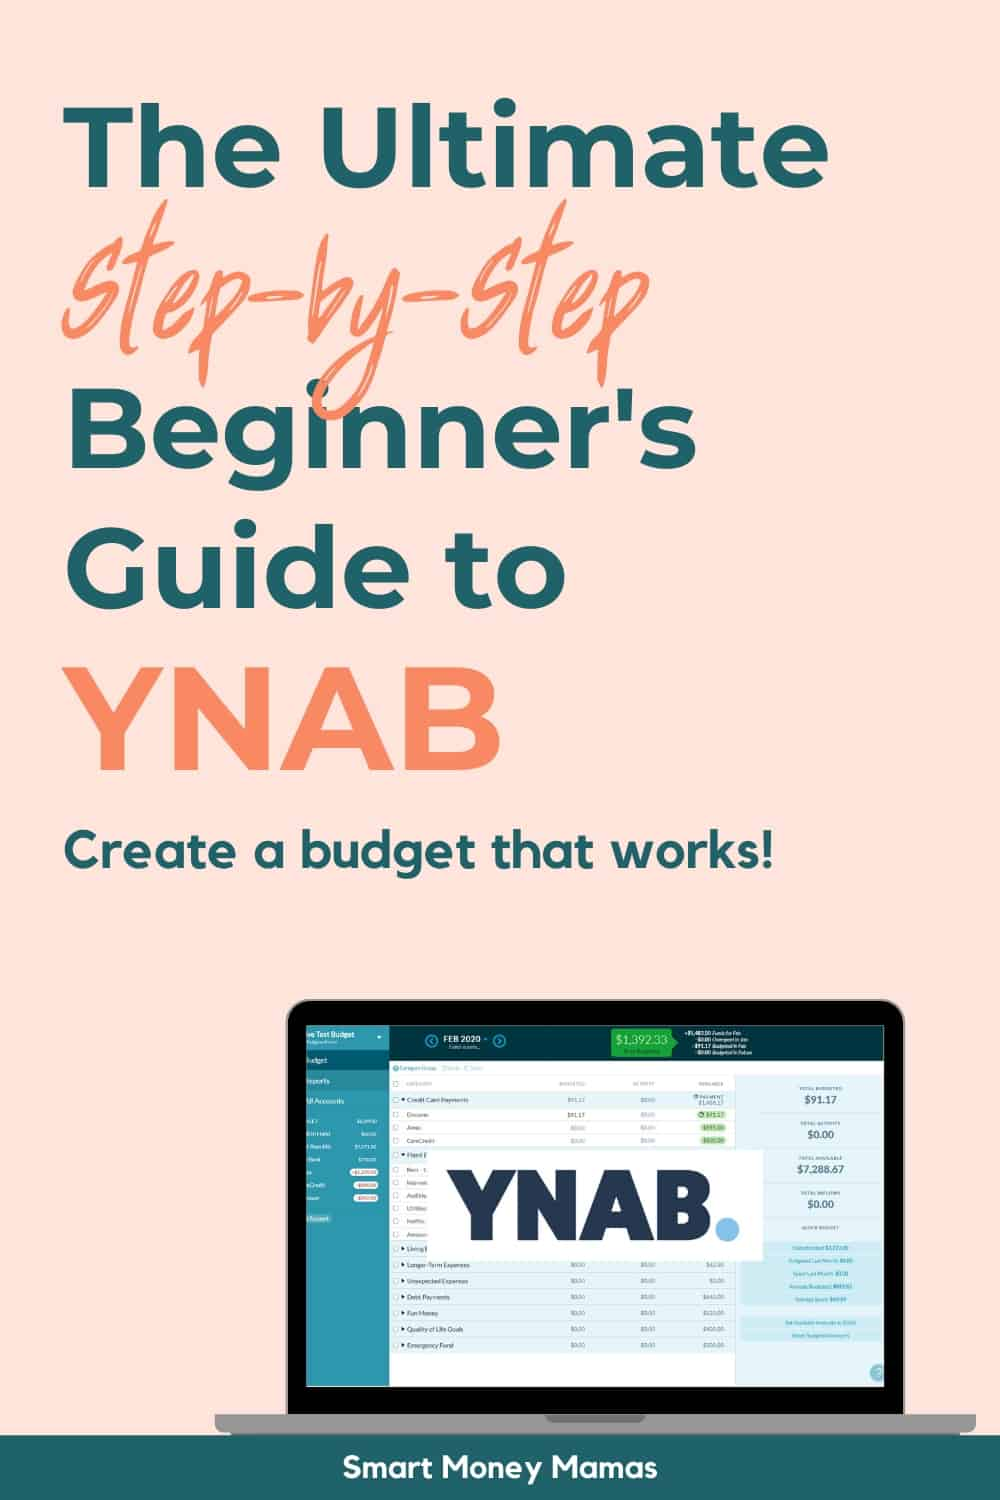 The Ultimate Step-by-Step Beginner's Guide to YNAB